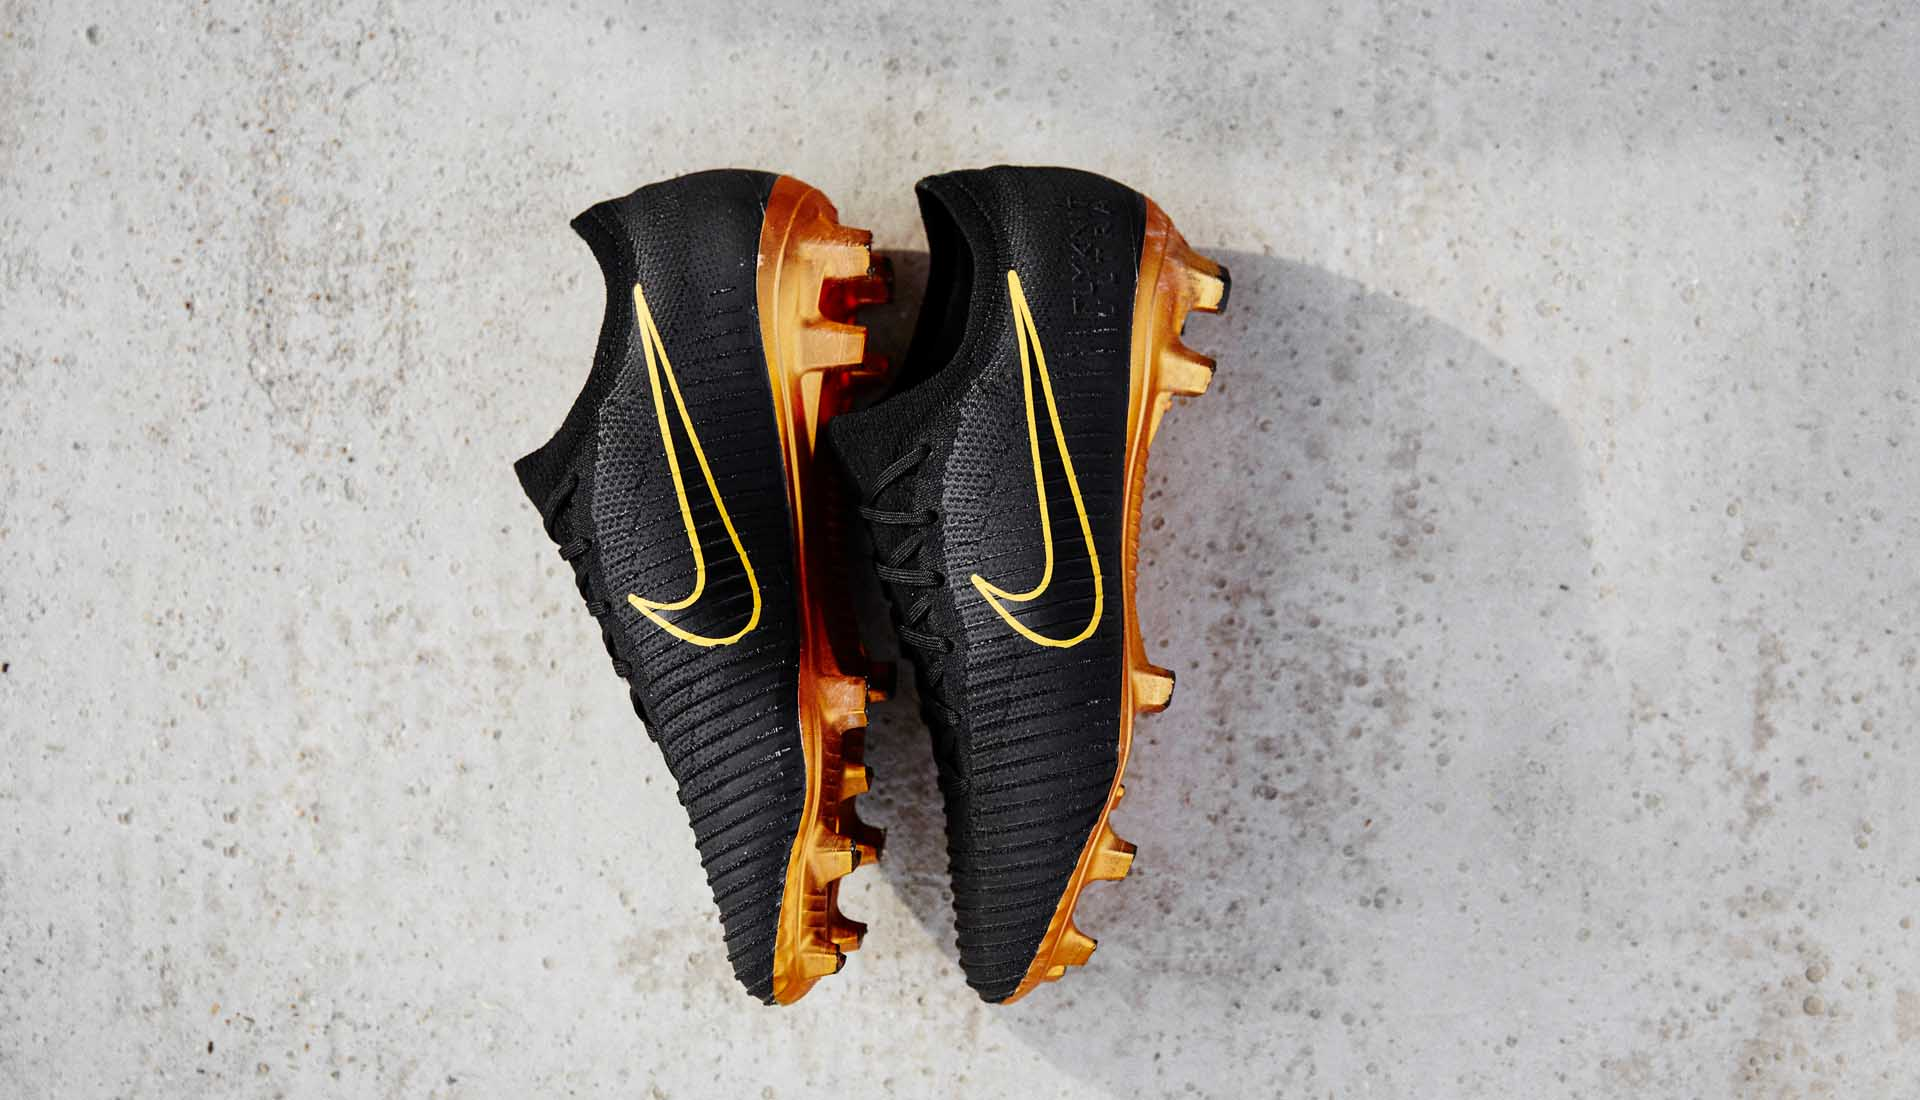 f4d6429f206c Nike Launch The Mercurial Vapor Flyknit Ultra - SoccerBible